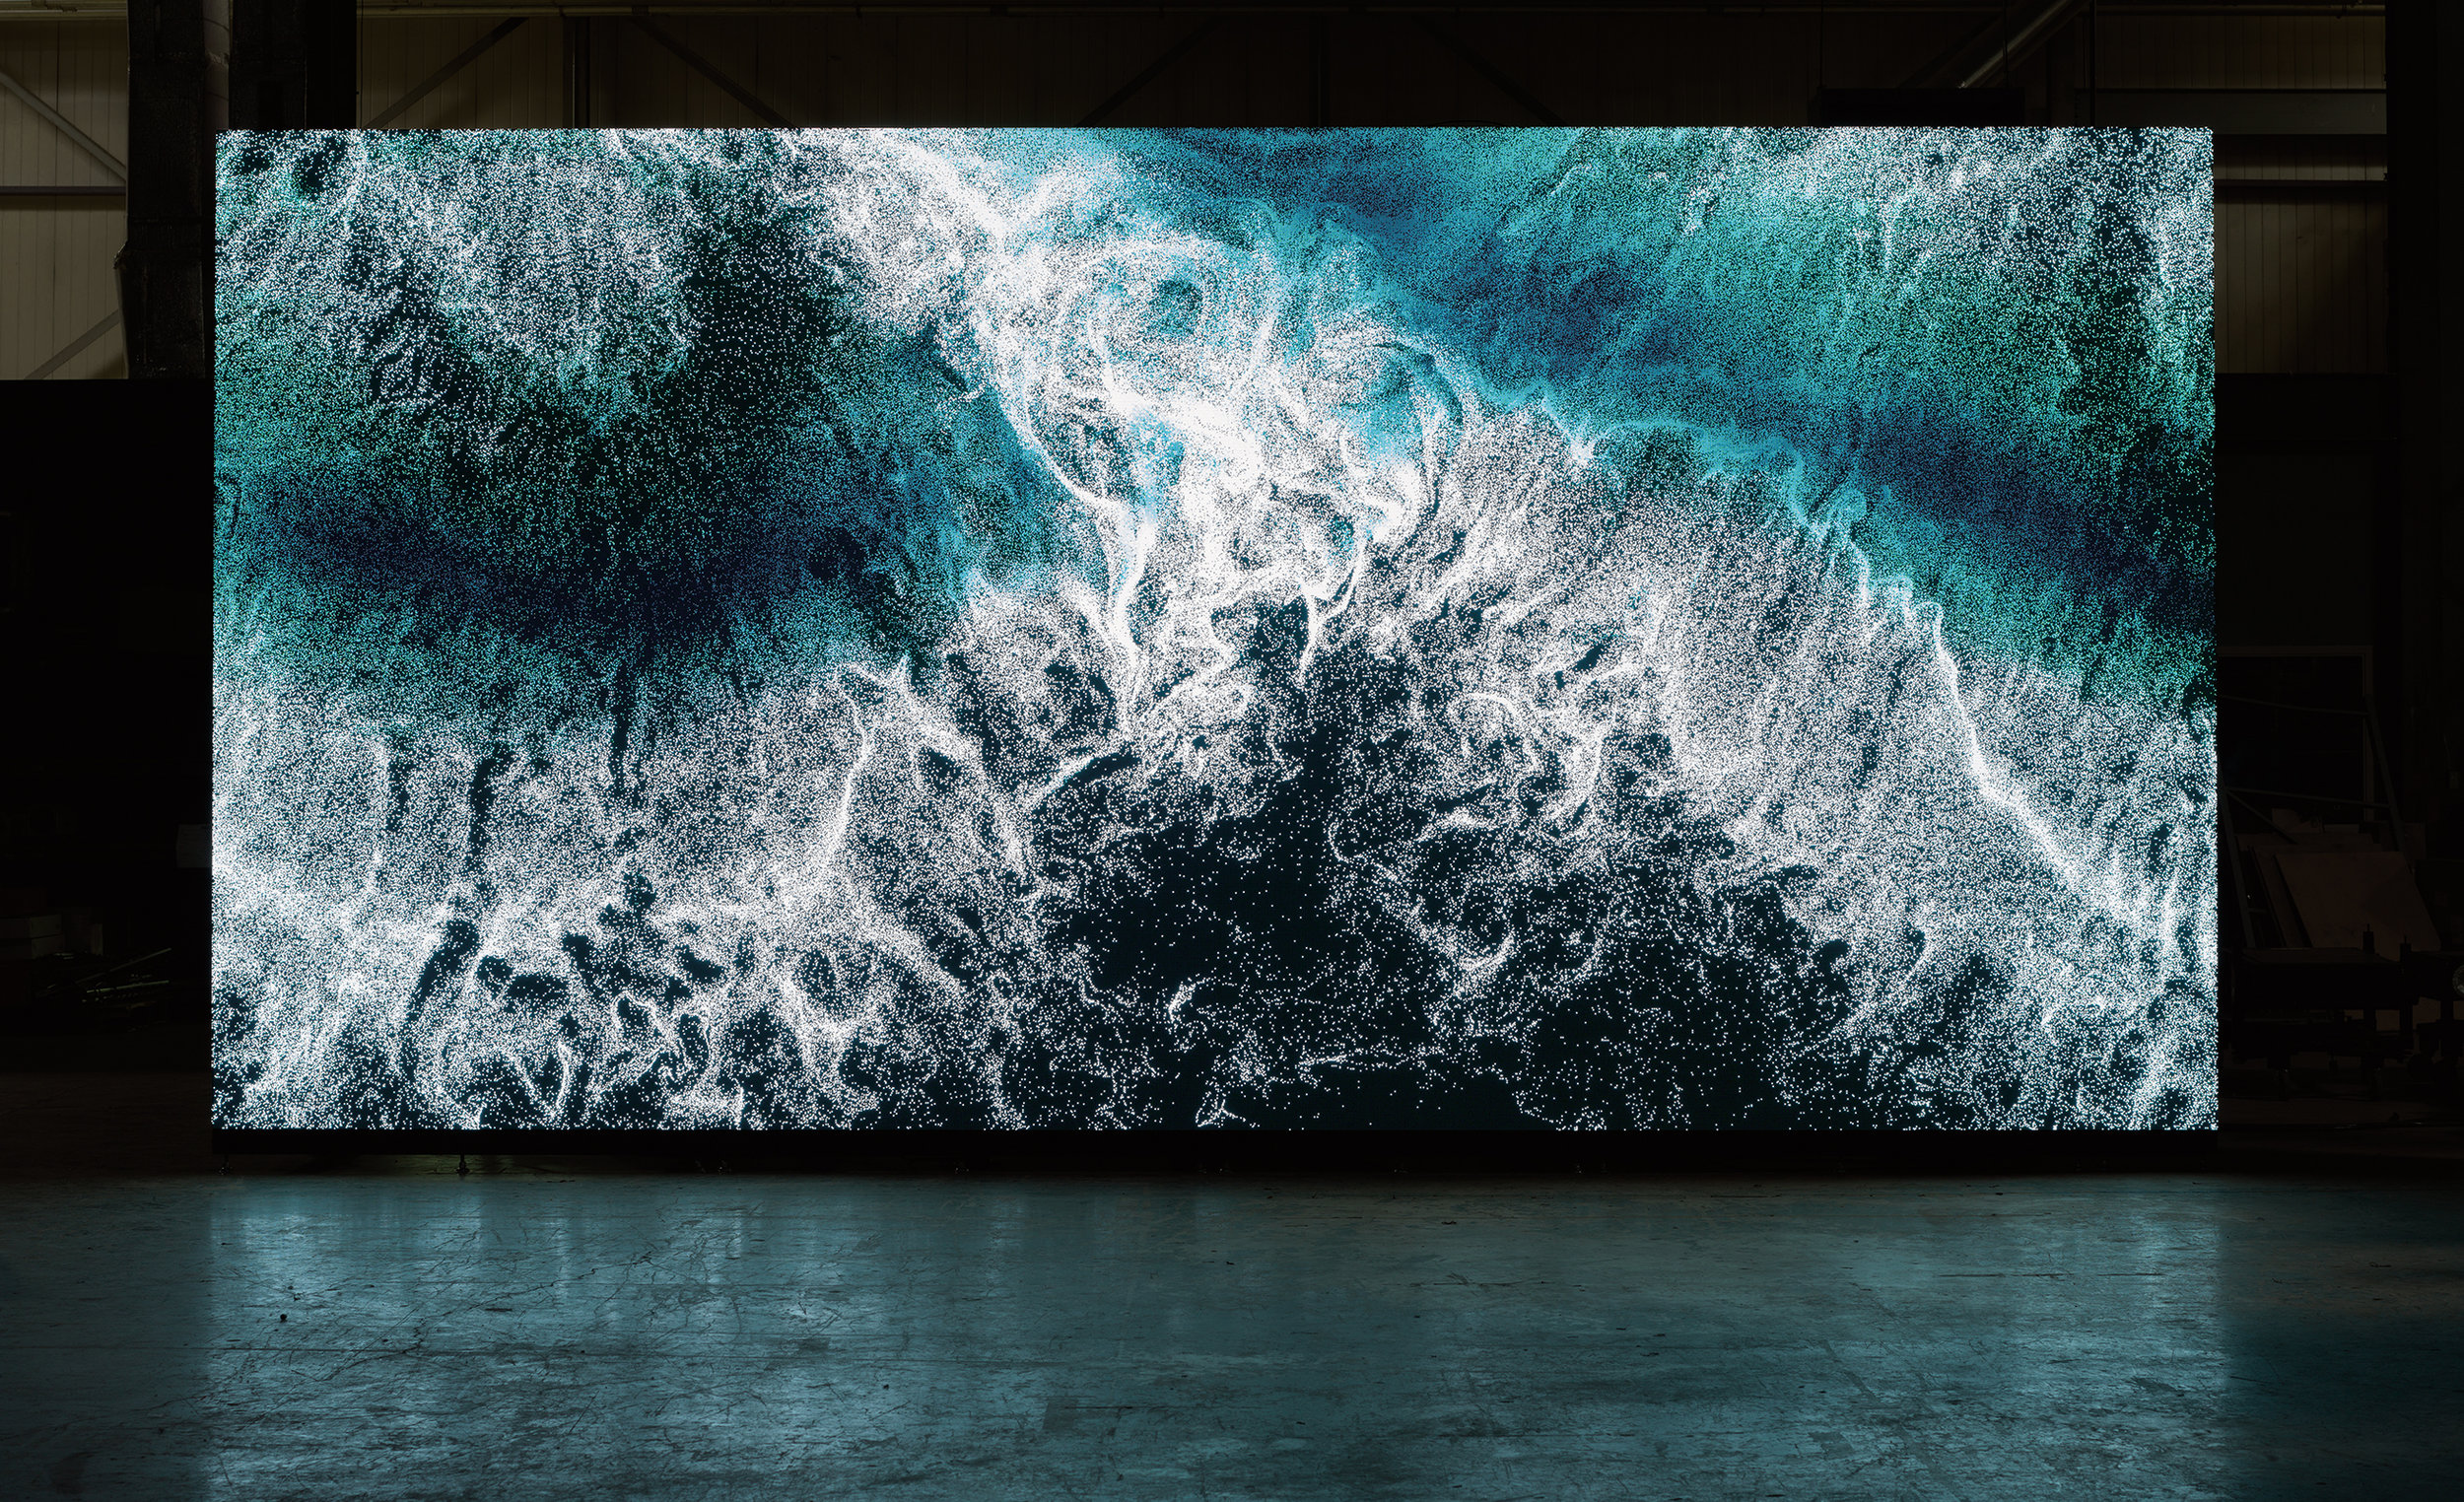 """Clifford Ross's """"Digital Wave 9"""" displayed on LED wall. Copyright Clifford Ross"""